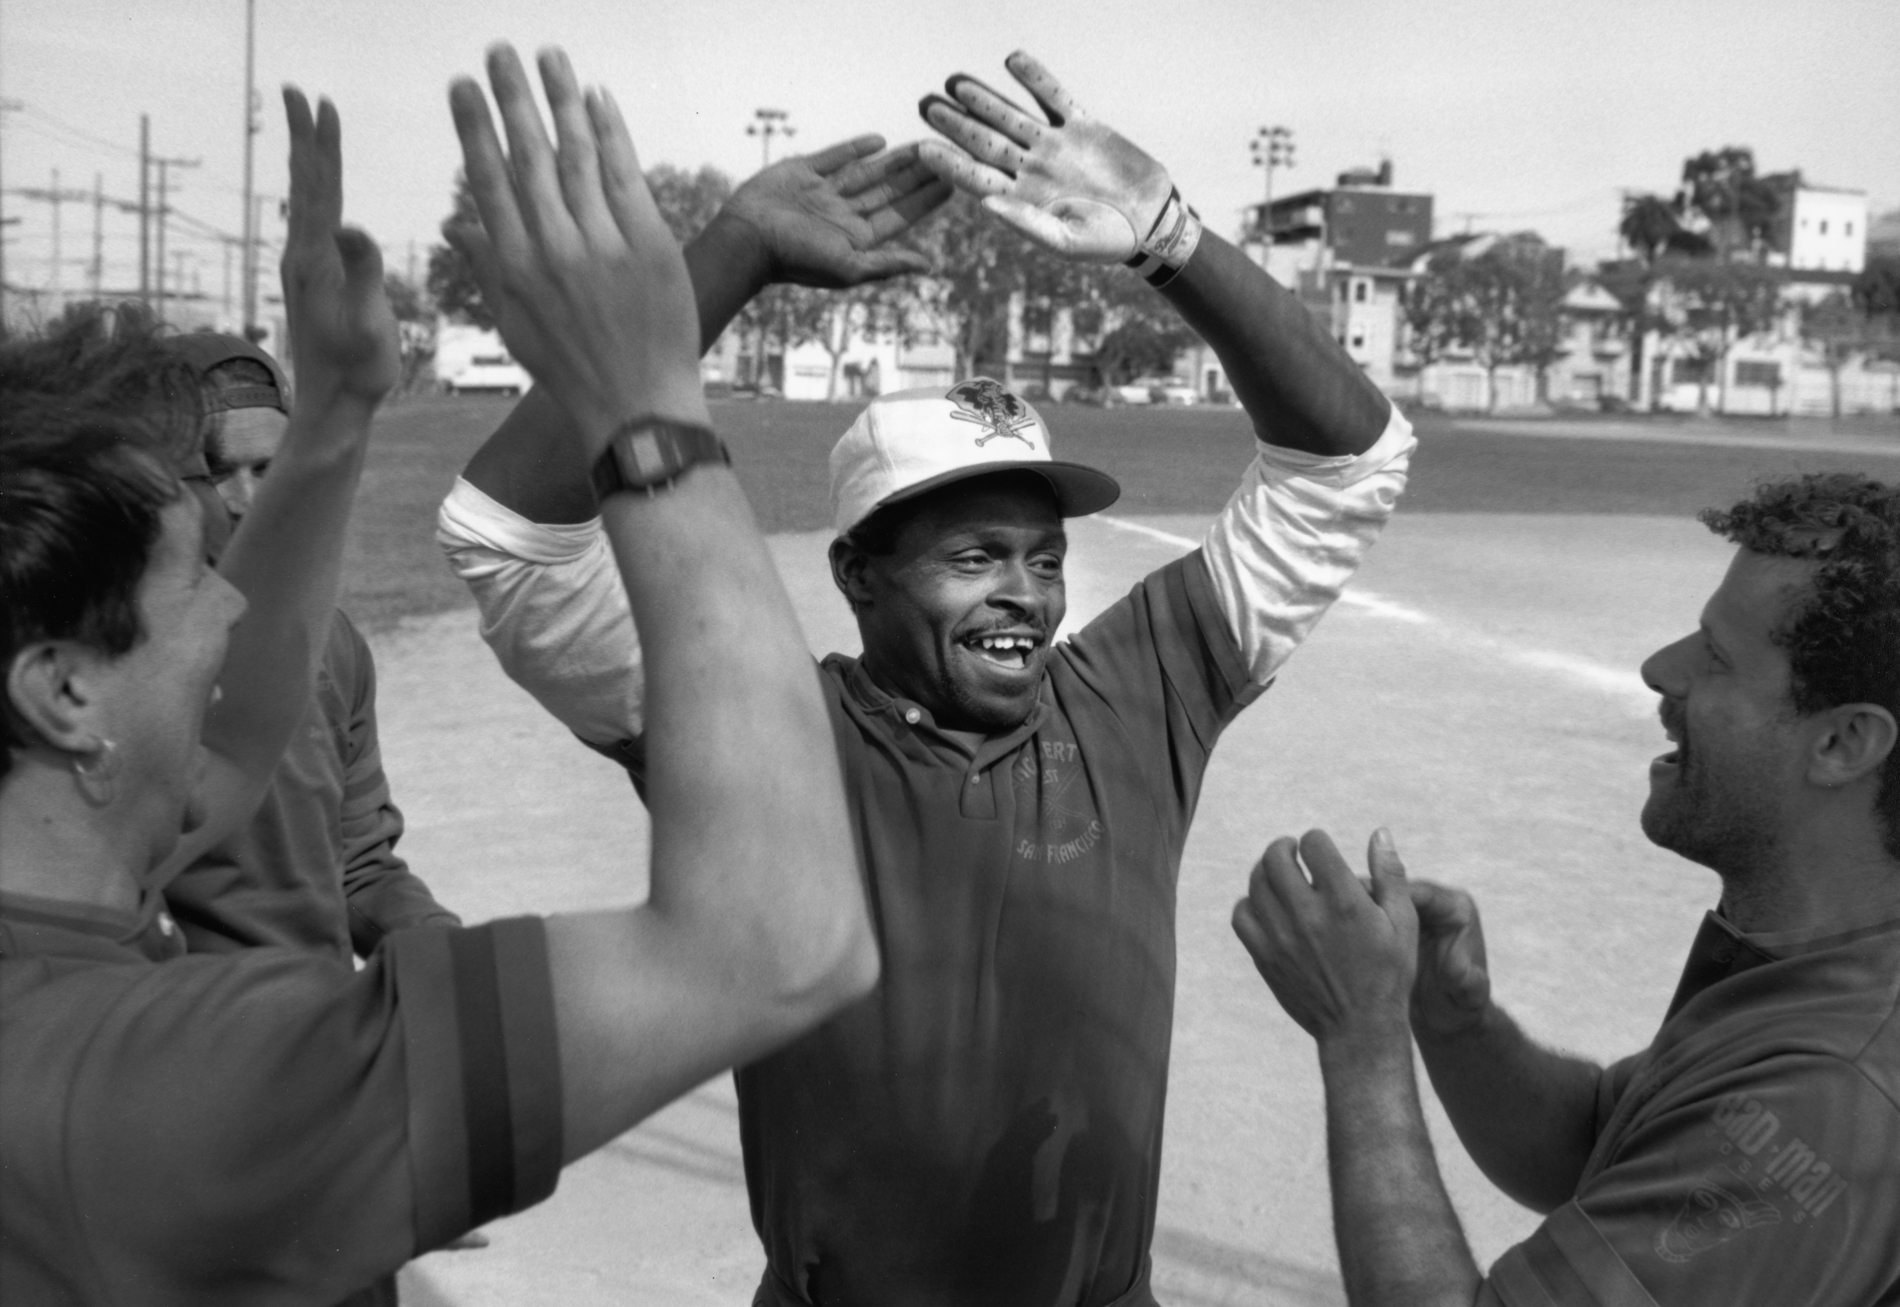 By 1993 Glenn Burke was still the only professional majoar league baseball player to have come out. He died in 1995 at the age of 42.